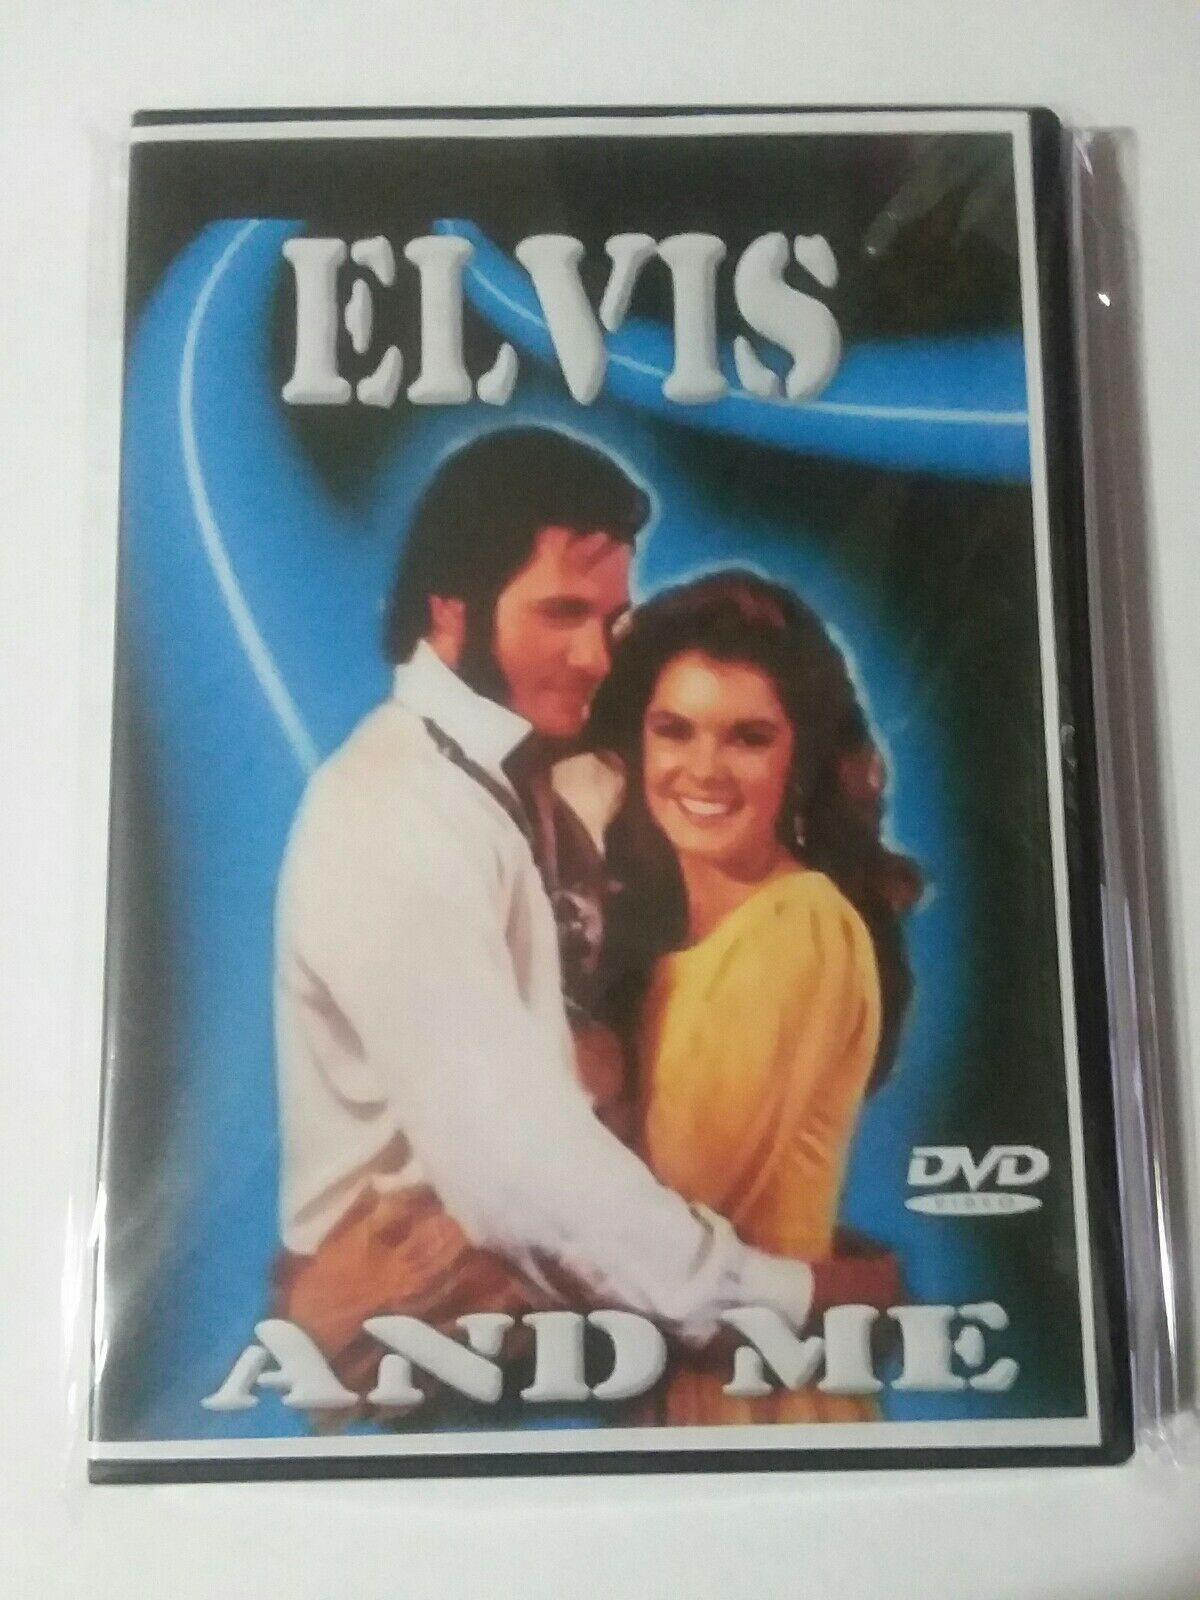 Primary image for Elvis And Me made for TV movie with extras DVD Dale Midkiff Free USA Shipping